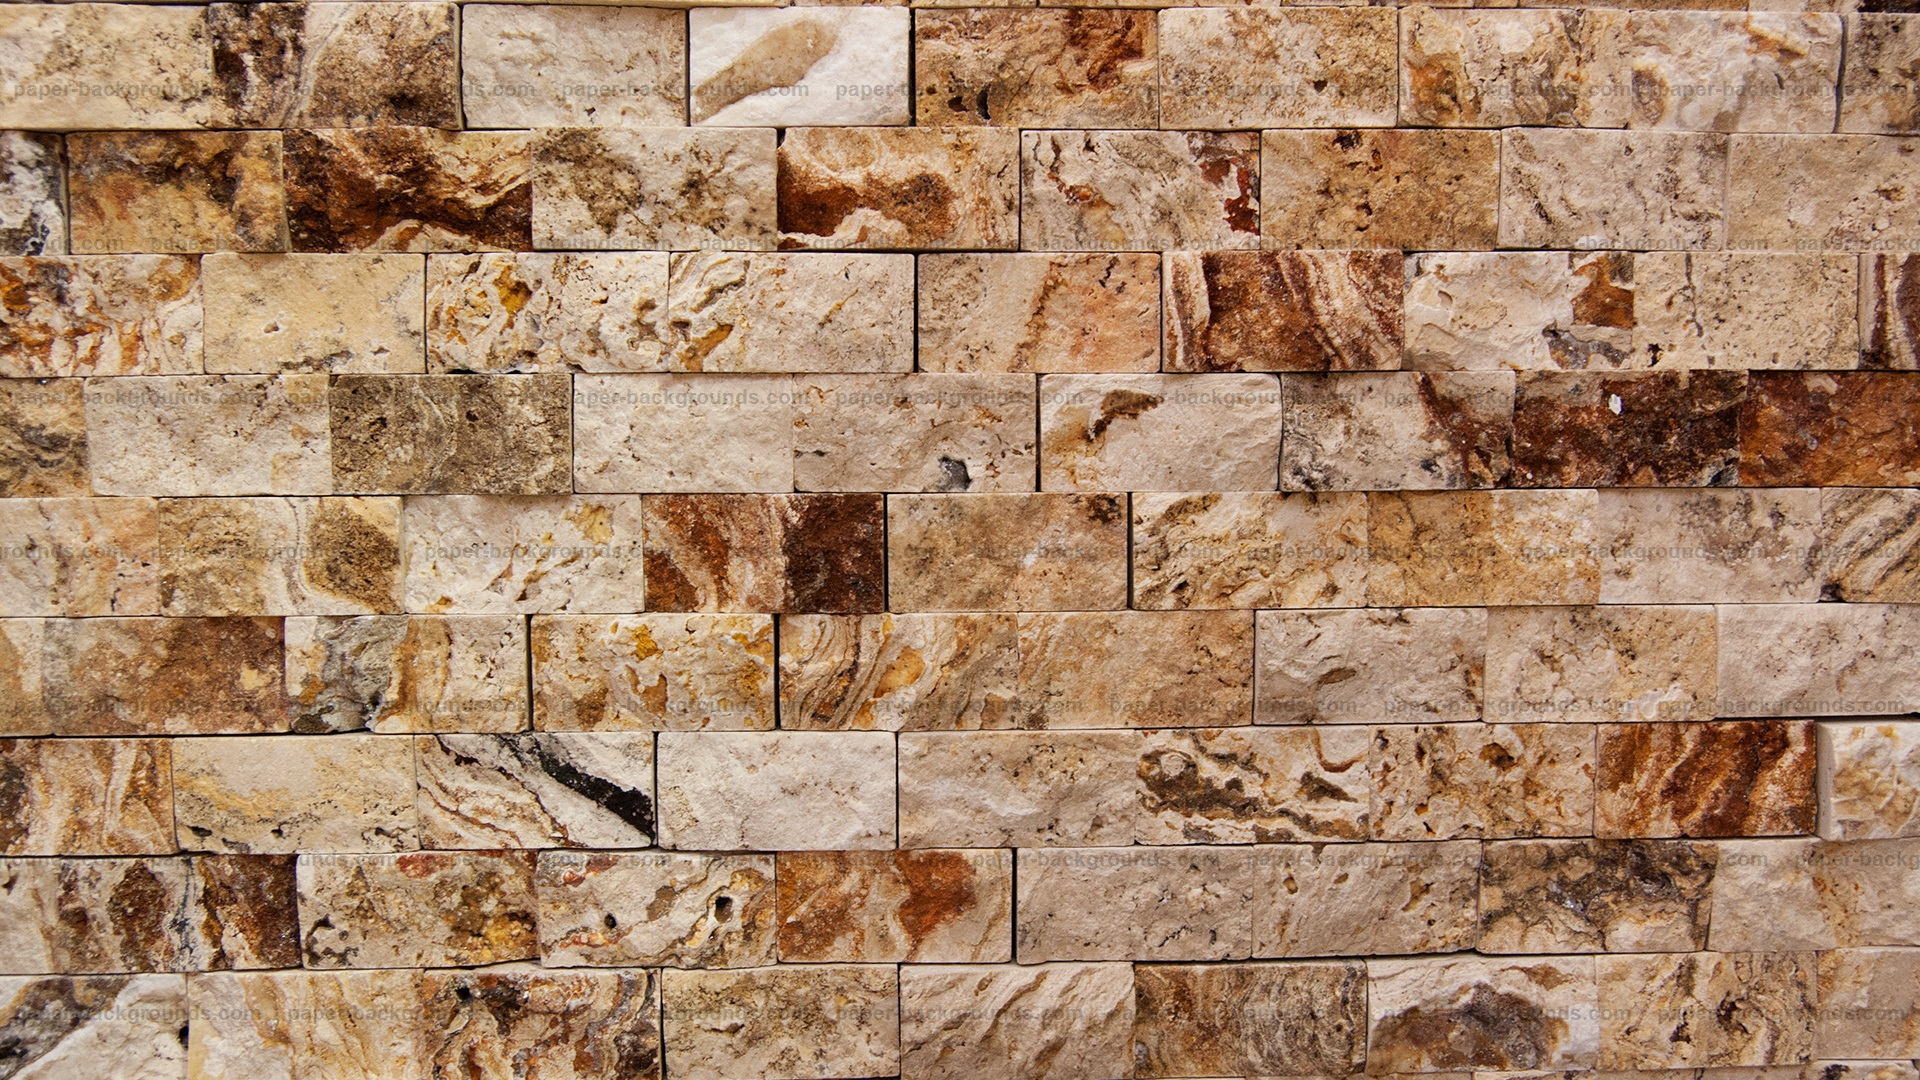 Rough Marble Brick Wall Texture HD